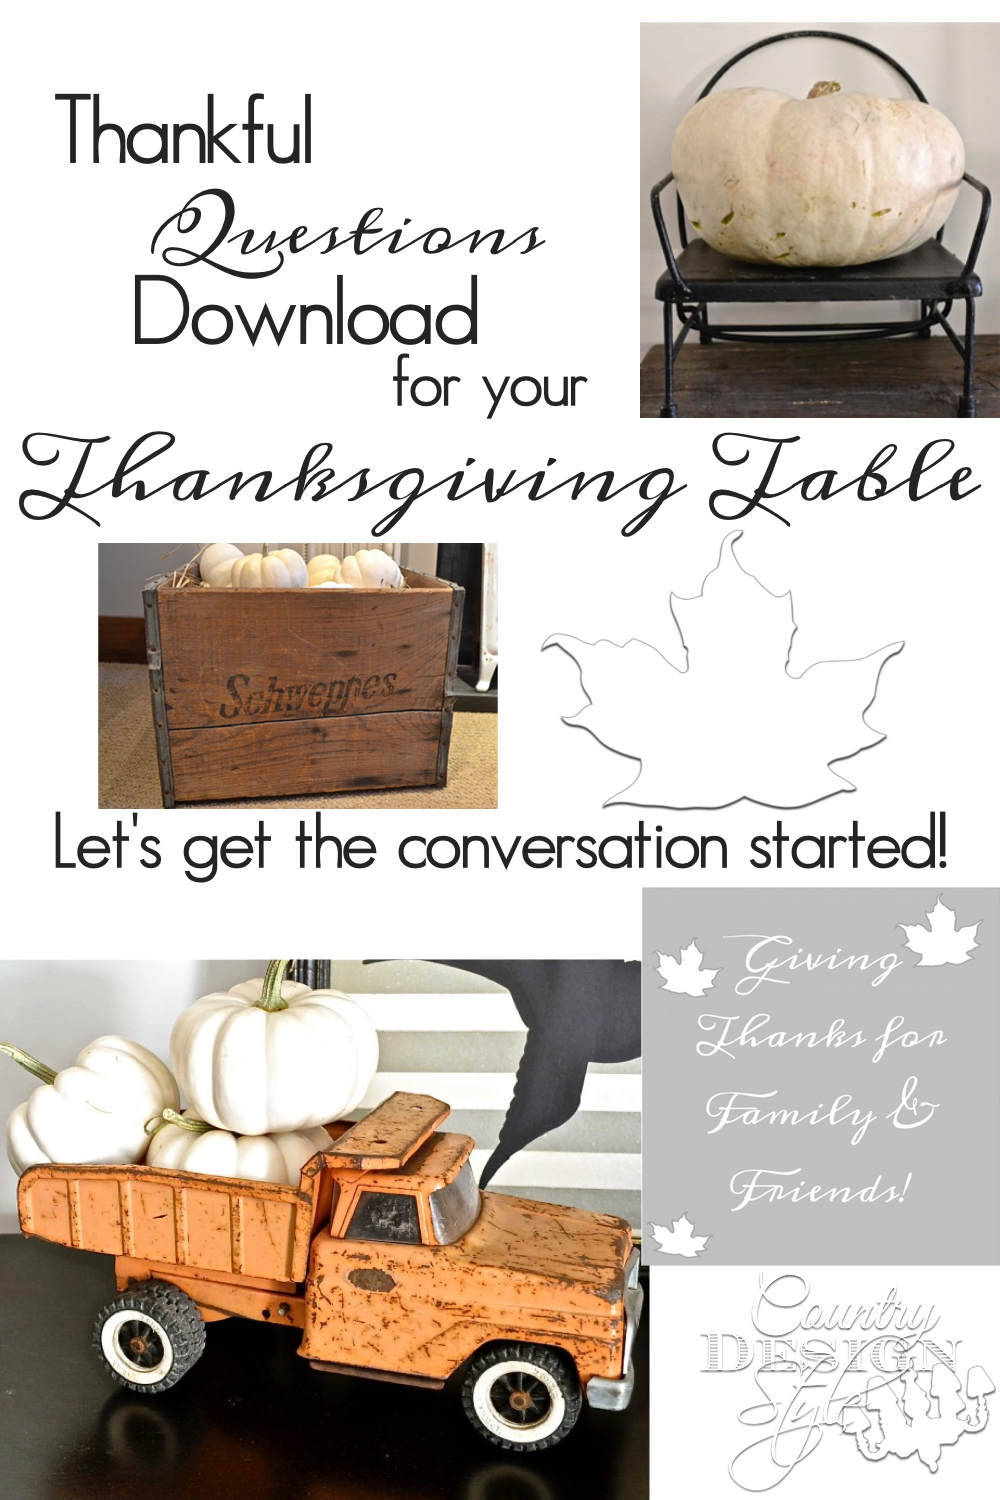 Thankful questions printable download available on the website. Let's get the conversation started! Perfect for all ages. Make them into napkin rings, tuck in a napkin, tie on a Thanksgiving tree | countrydesignstyle.com